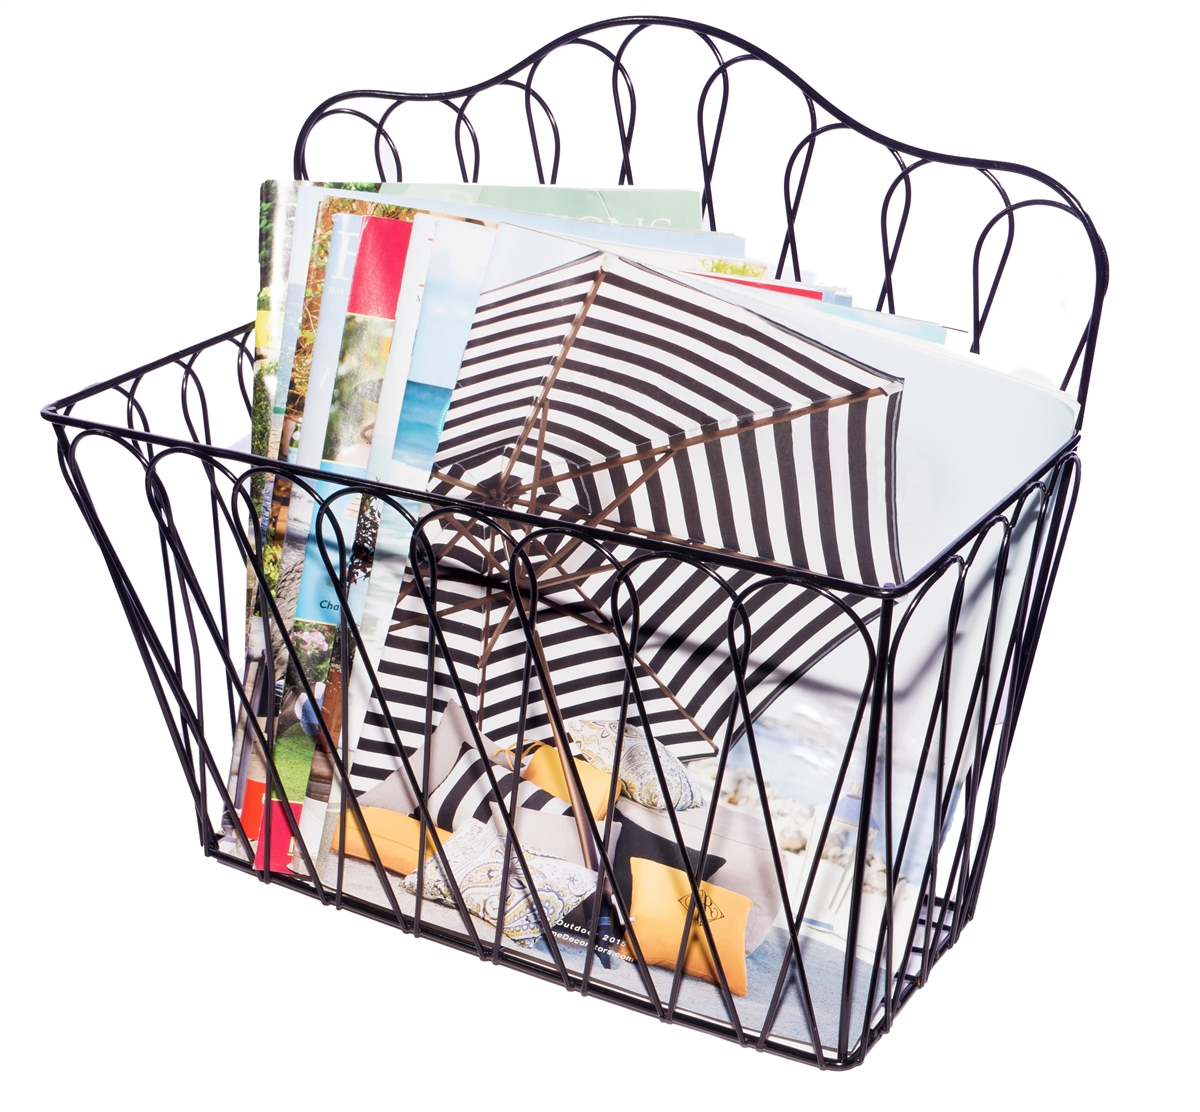 Decorative Wall Mounted Metal Magazine And Storage Rack By Trademark Innovations